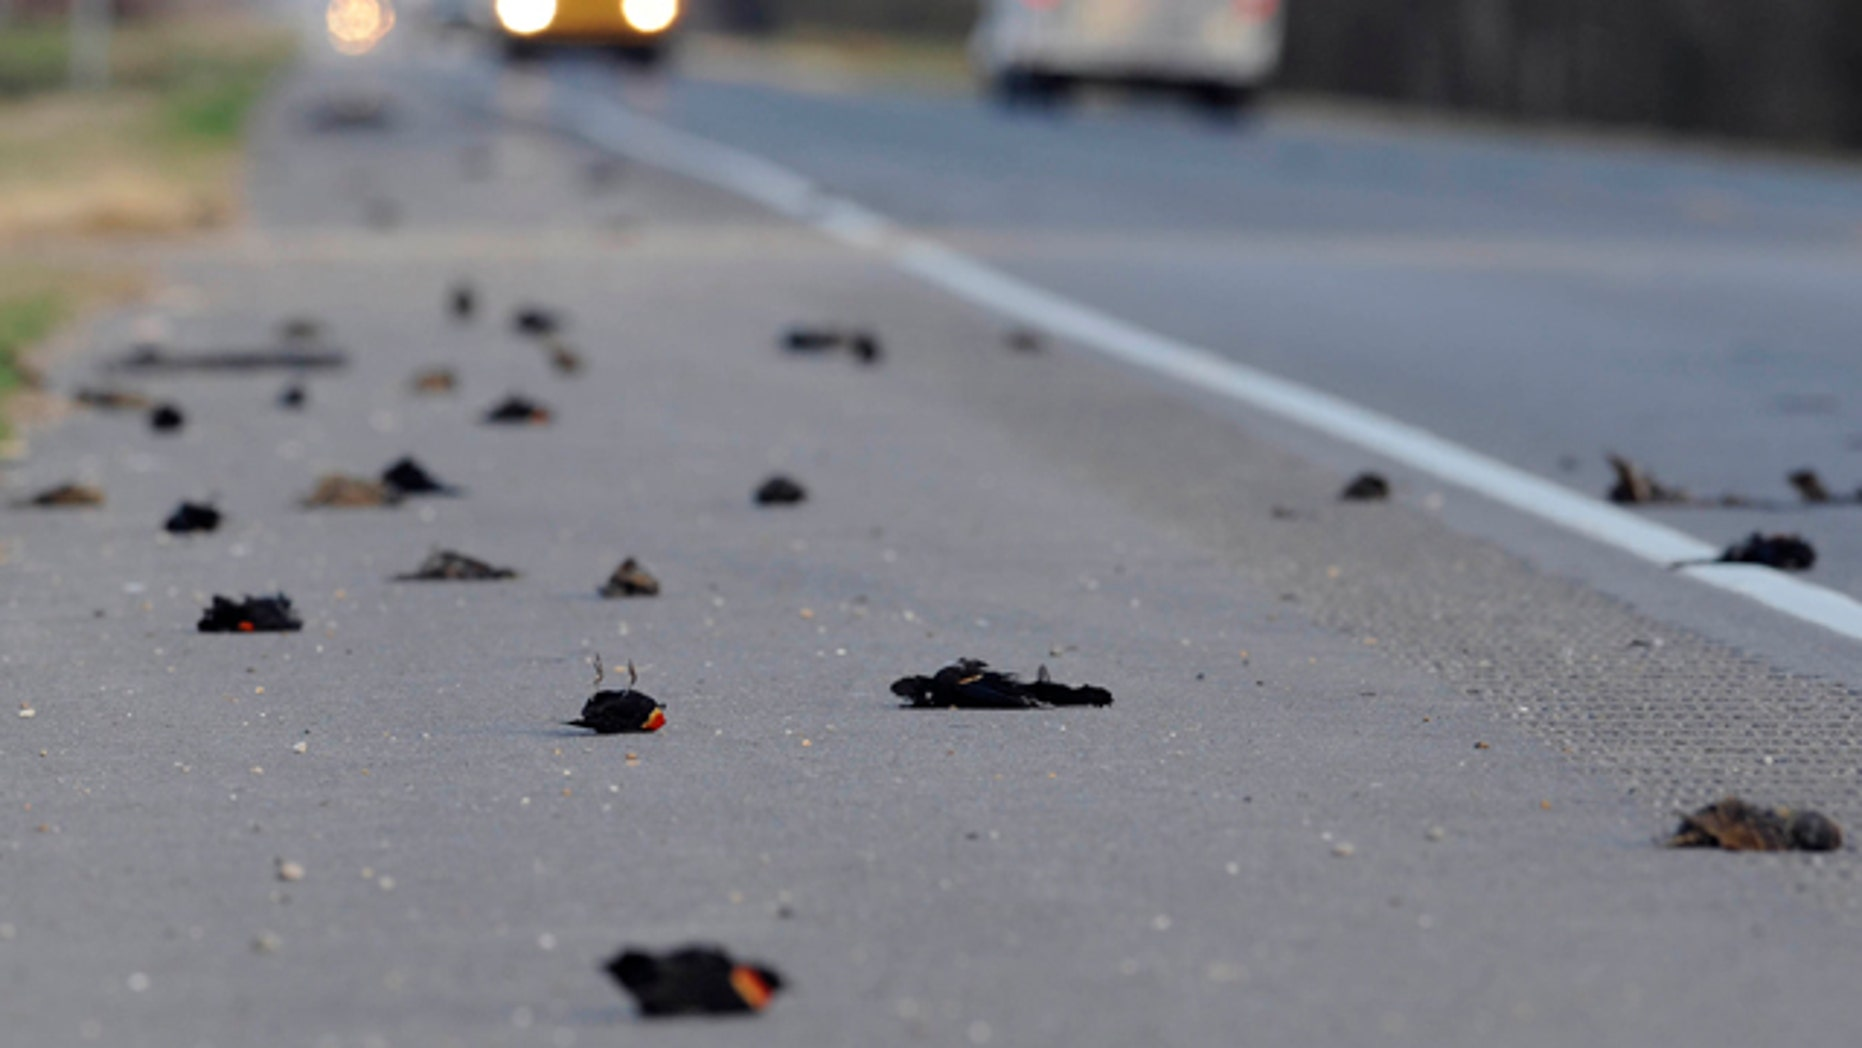 Jan. 3: Hundreds of dead birds lay along the side of the Morganza Hwy. in Pointe Coupee Parish, La., about 300 miles south of Beebe, Ark., where more than 3,000 blackbirds fell from the sky three days earlier.